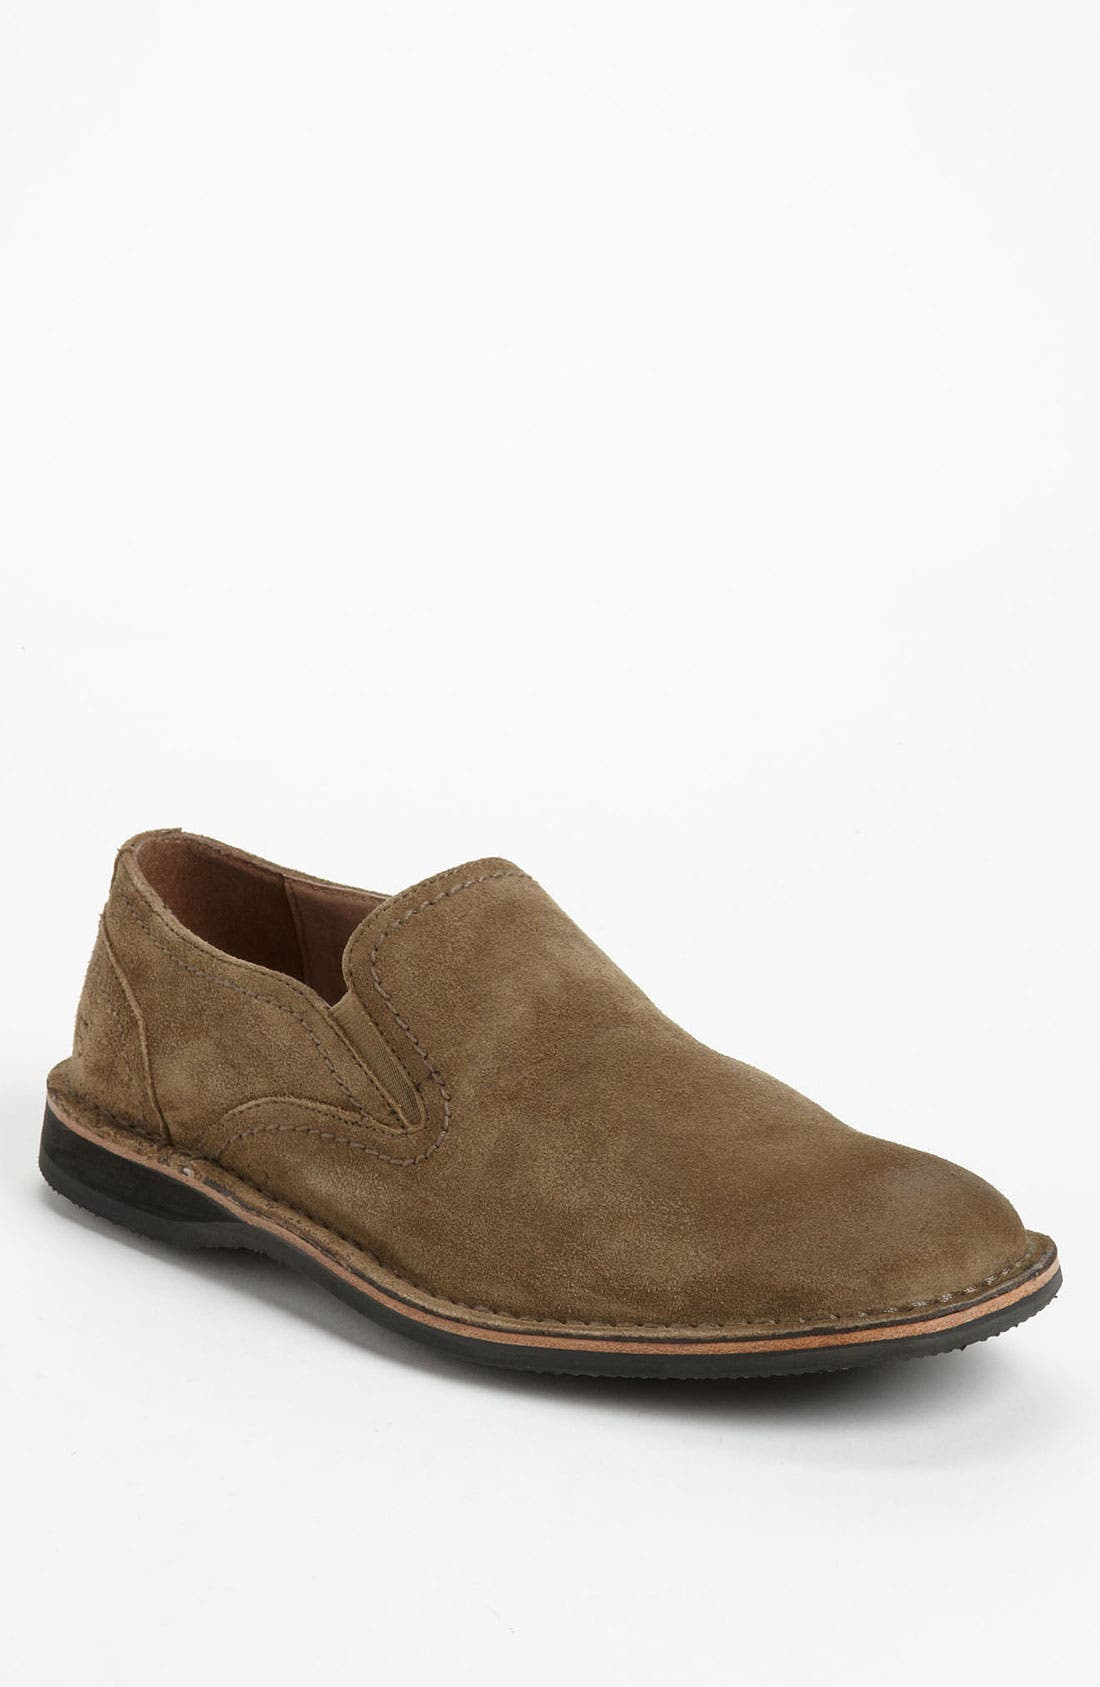 Alternate Image 1 Selected - Andrew Marc 'Dorchester' Slip-On (Online Only) (Men)